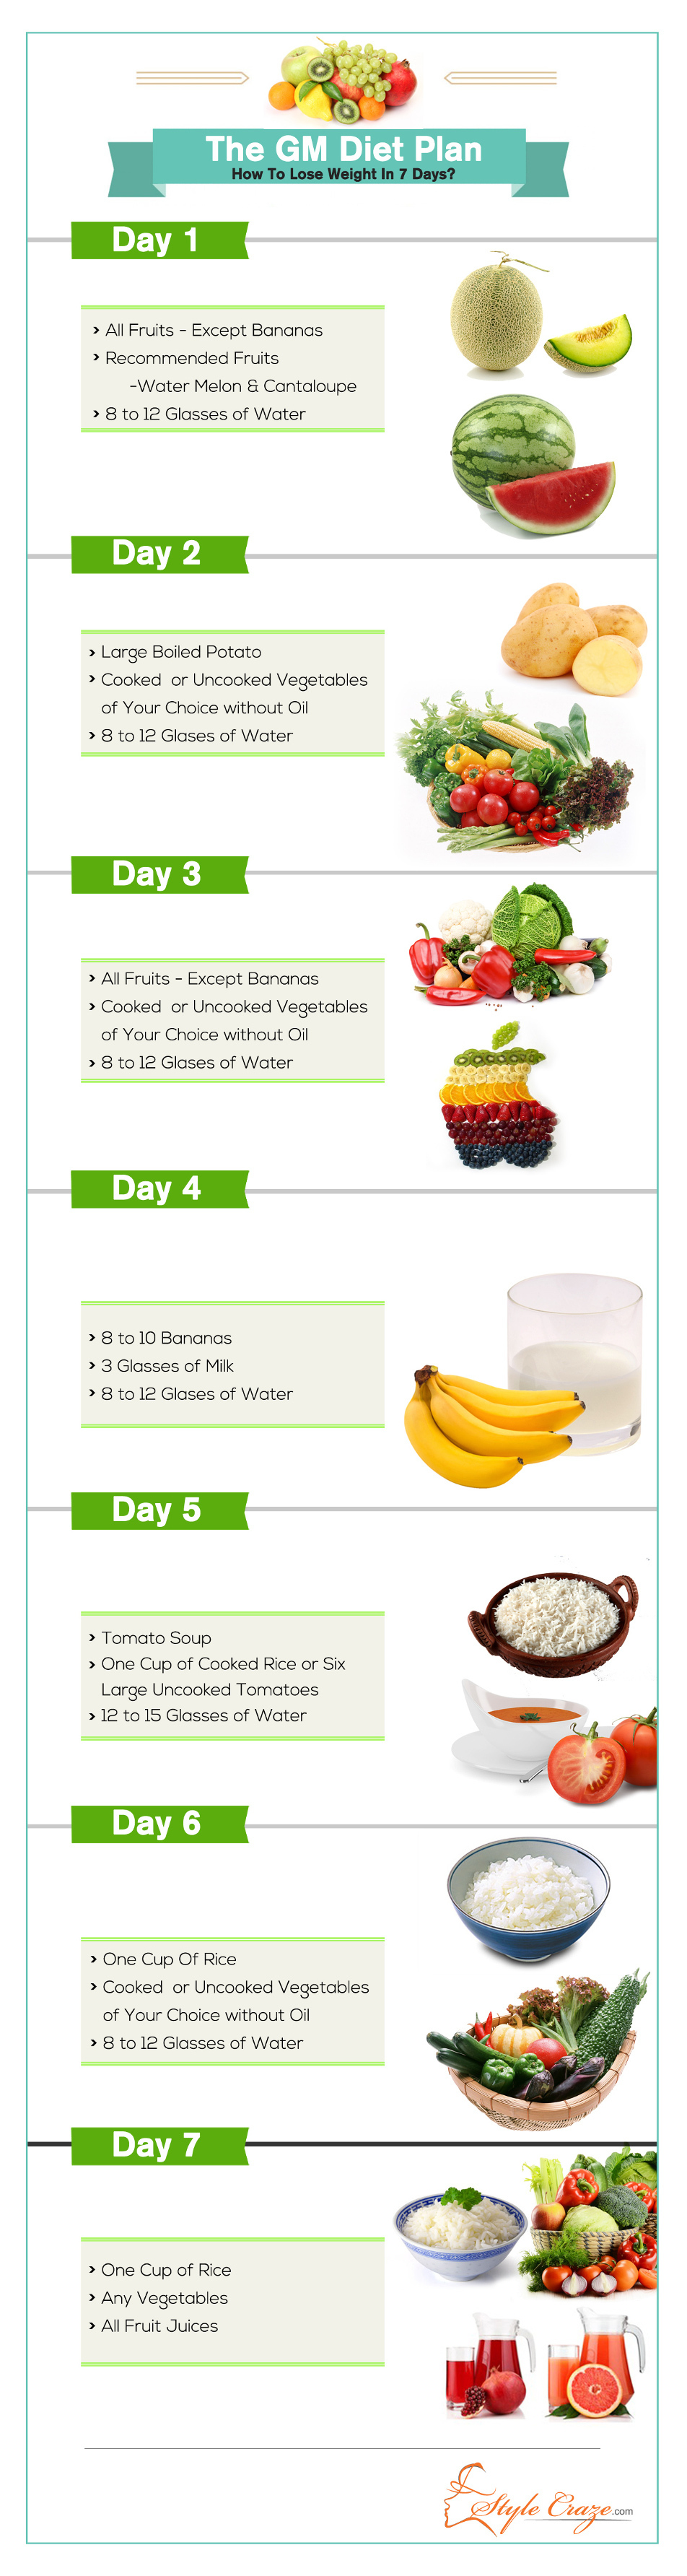 Gm diet plan chart for weight loss